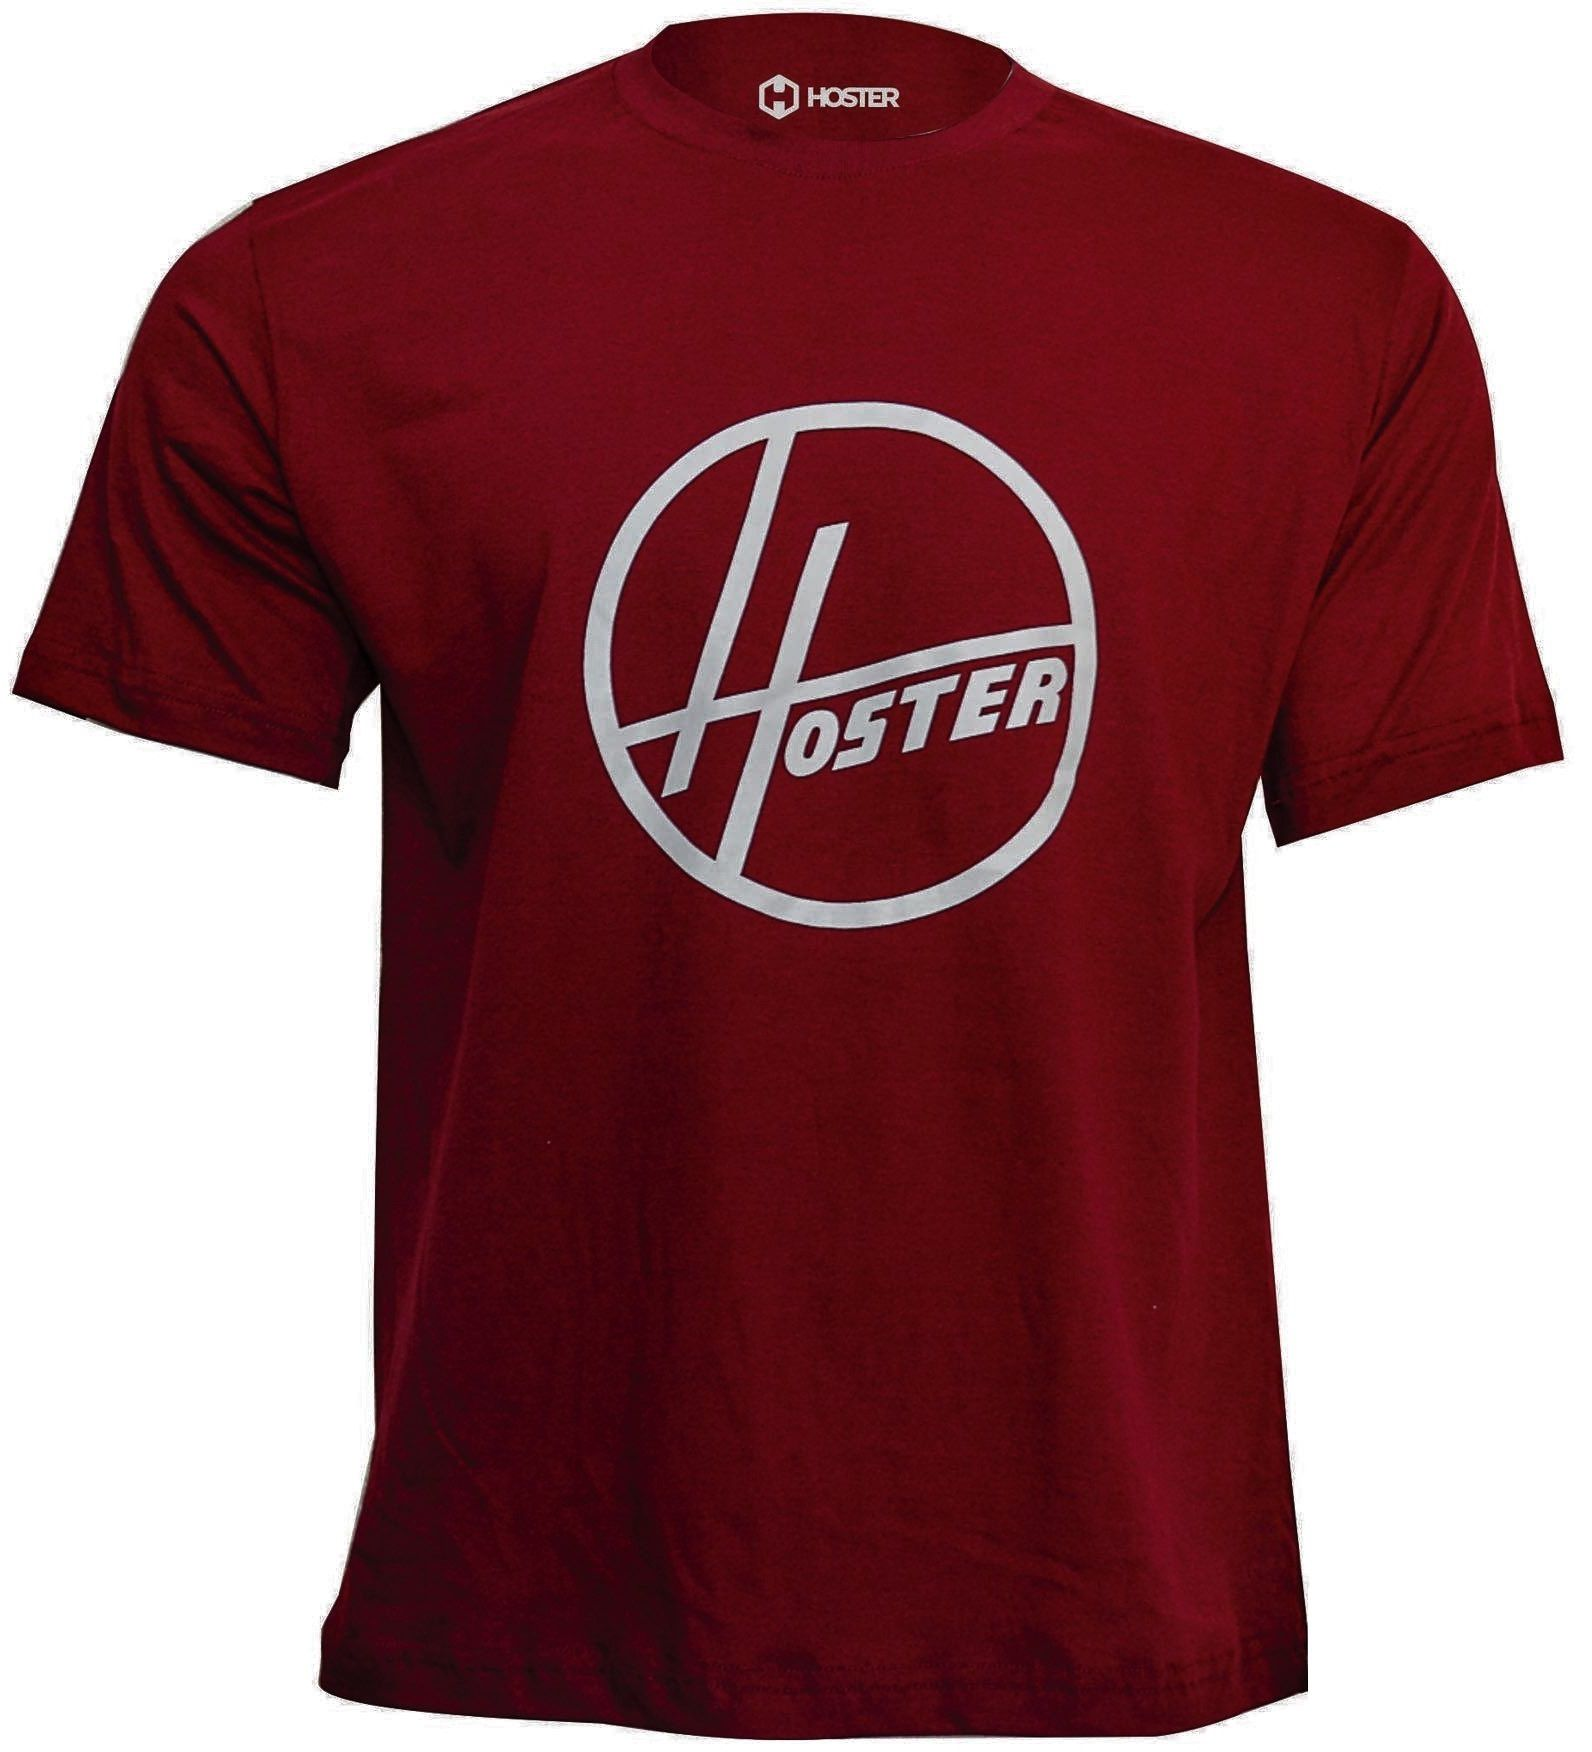 CAMISETA HOSTER WAVE BORDO